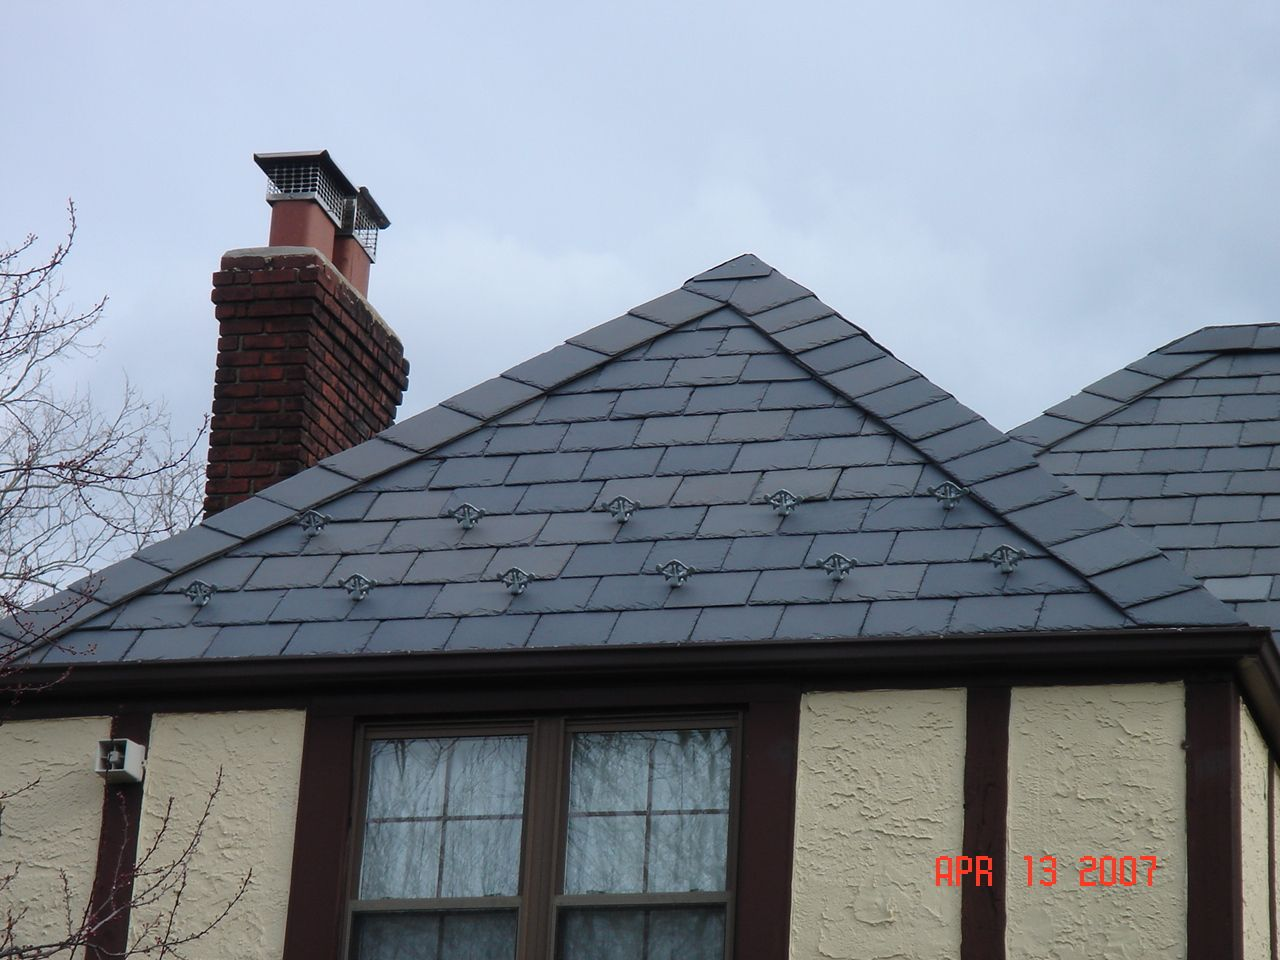 Slate Roofing Is A Cost Effective Choice For Homes And Properties Experiencing The Humid Summers And Wet Winters Of Nassau County Roofing Slate Roof Shingling